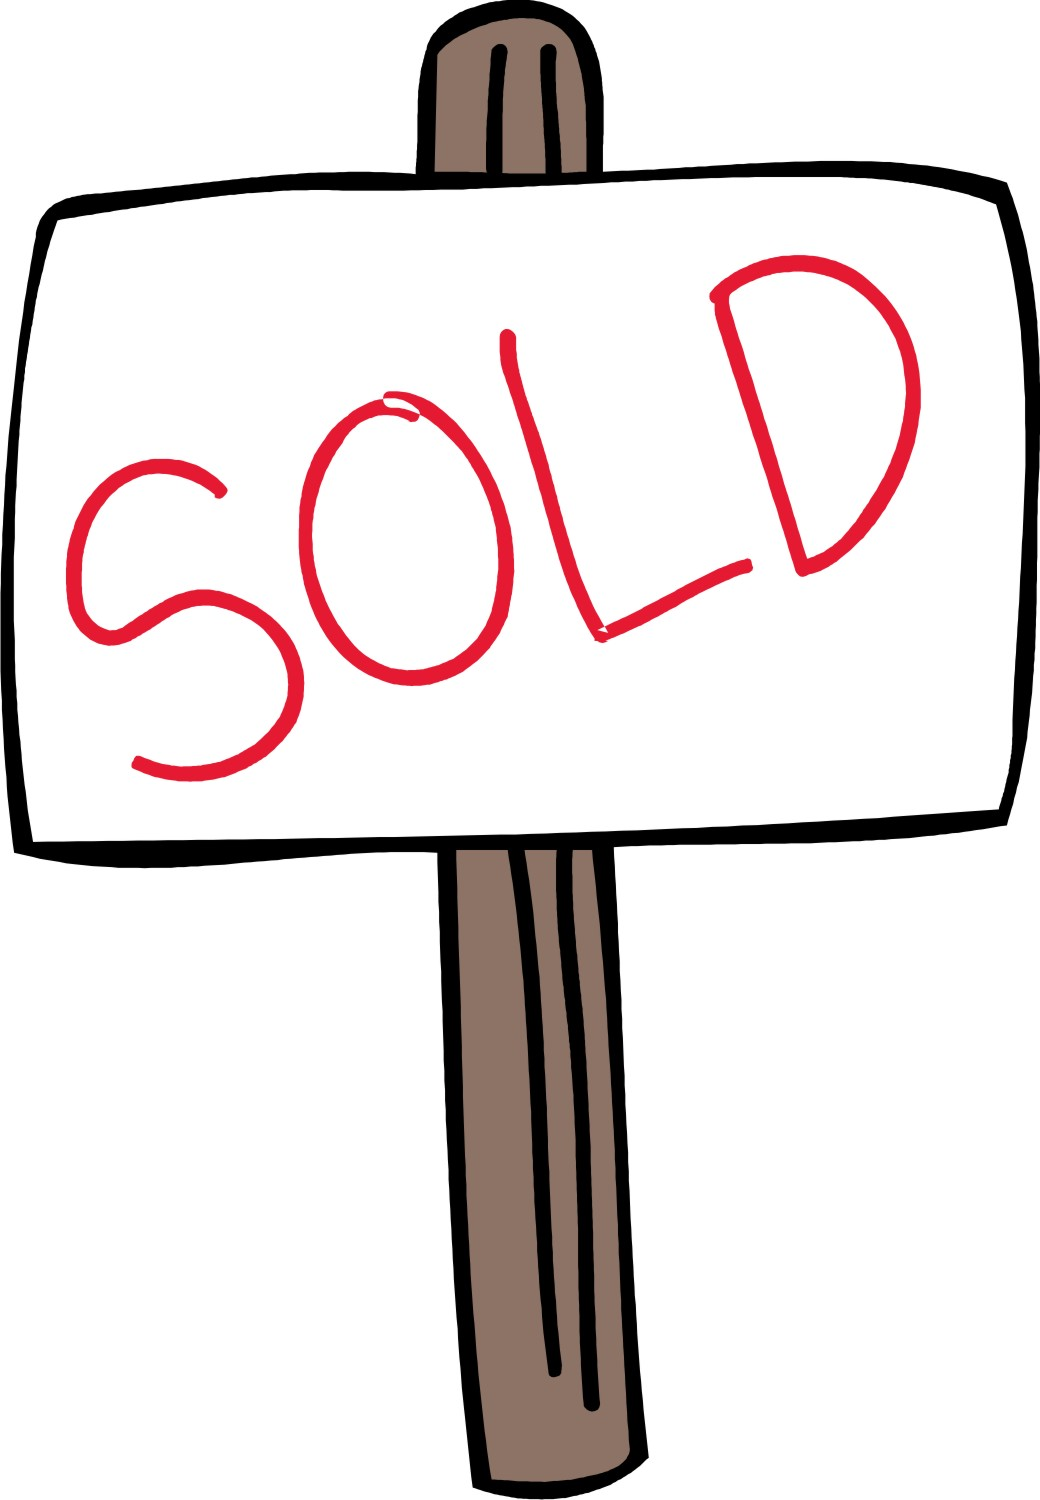 1040x1500 Sold Sign Clipart 4 Sold Sign Clip Art Image